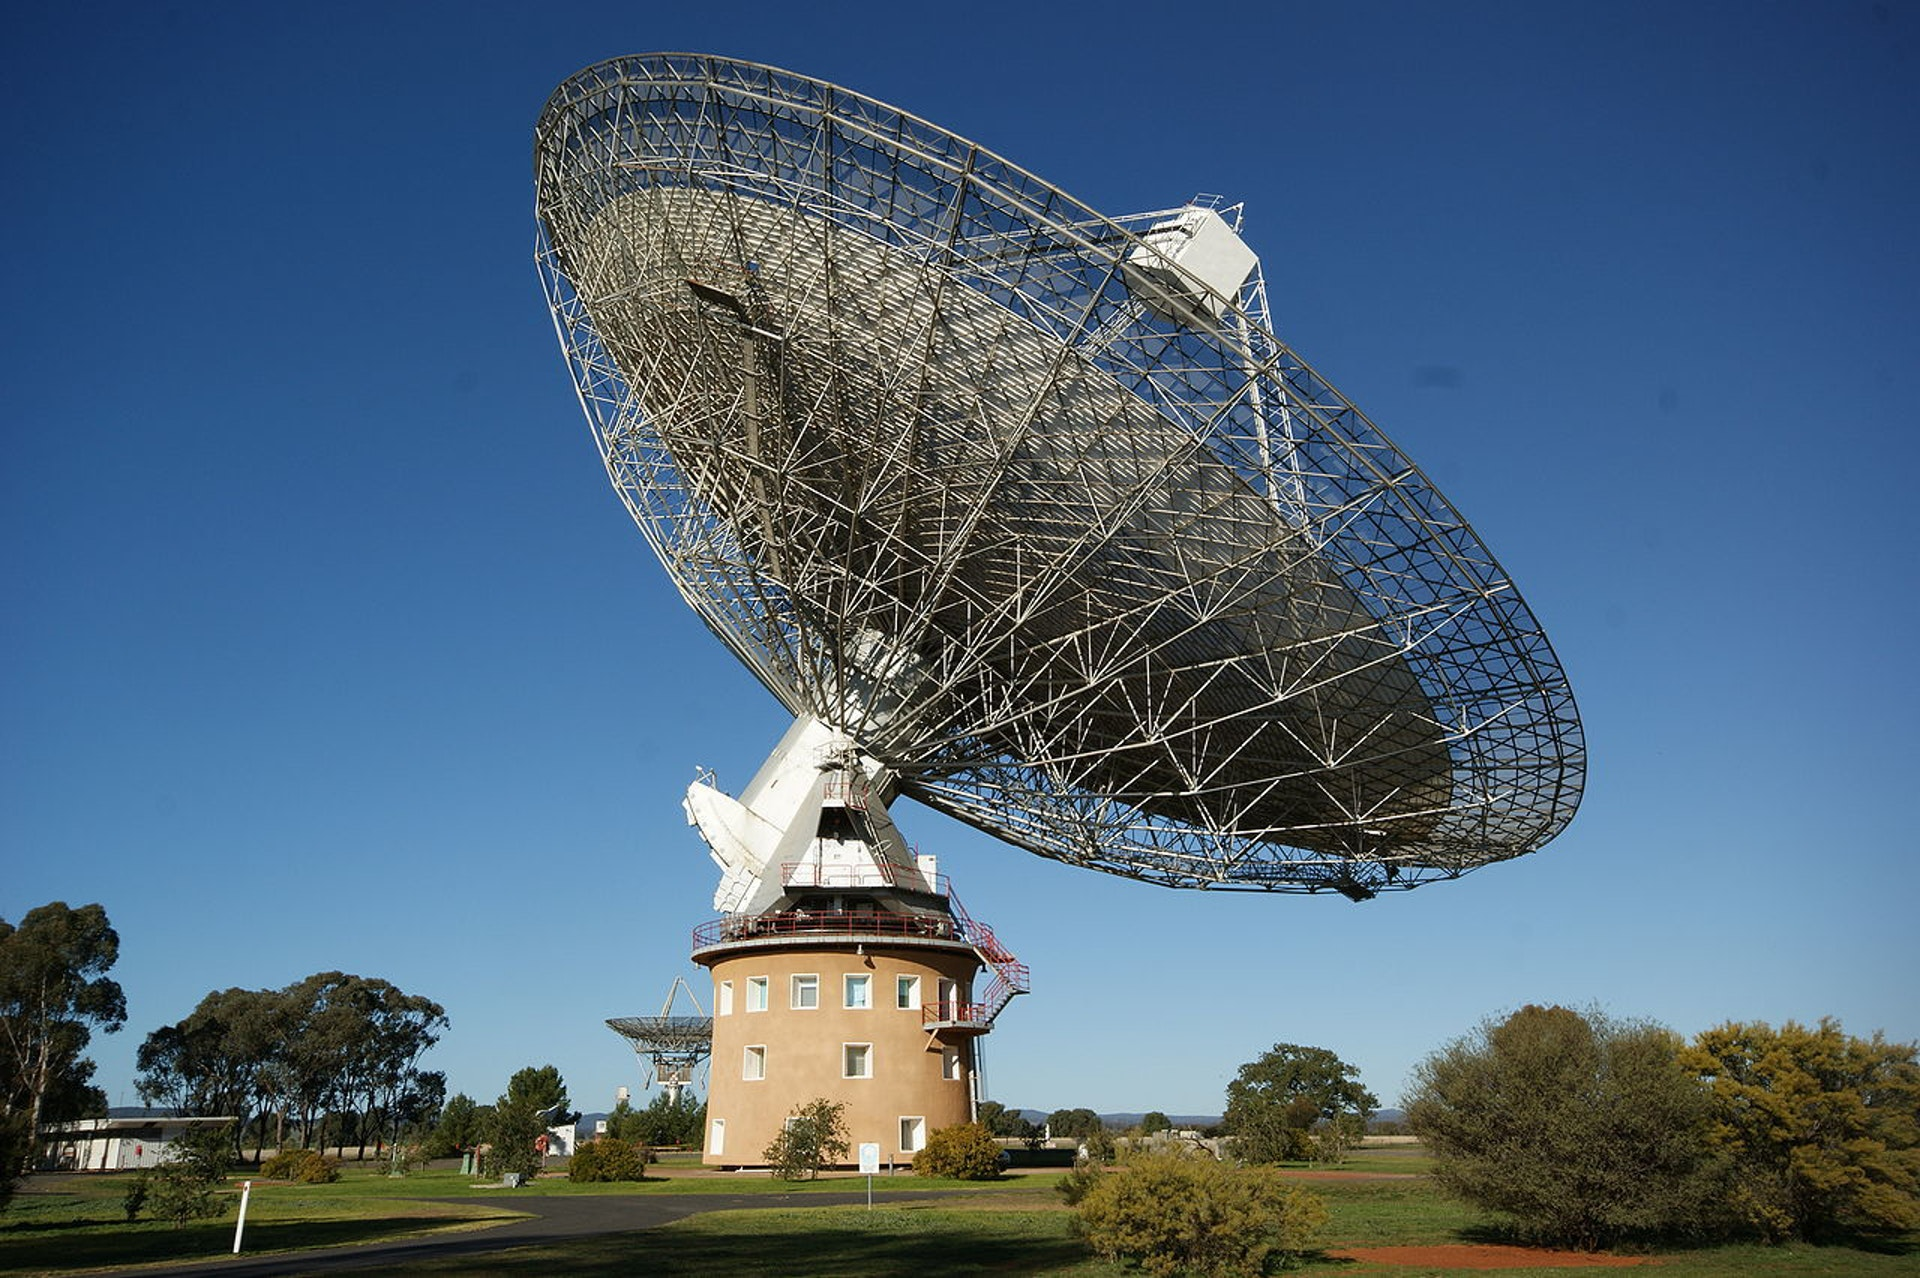 The radio telescope at Parkes Observatory in Australia